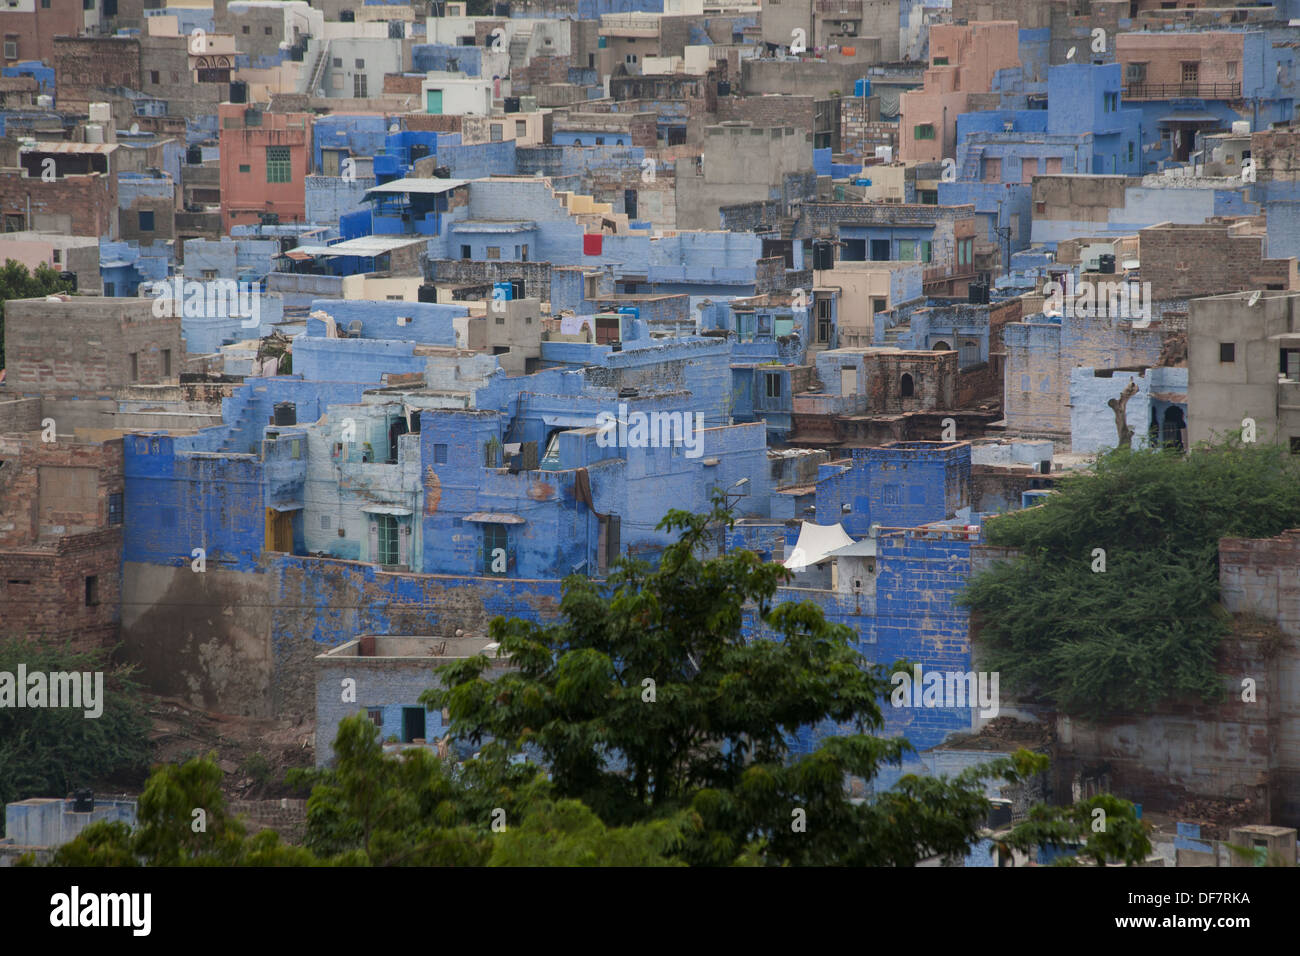 Jodhpur is often referred to as the 'Blue City' due to the vivid blue painted houses around the Mehrangarh Fort and Brahmpuri - Stock Image